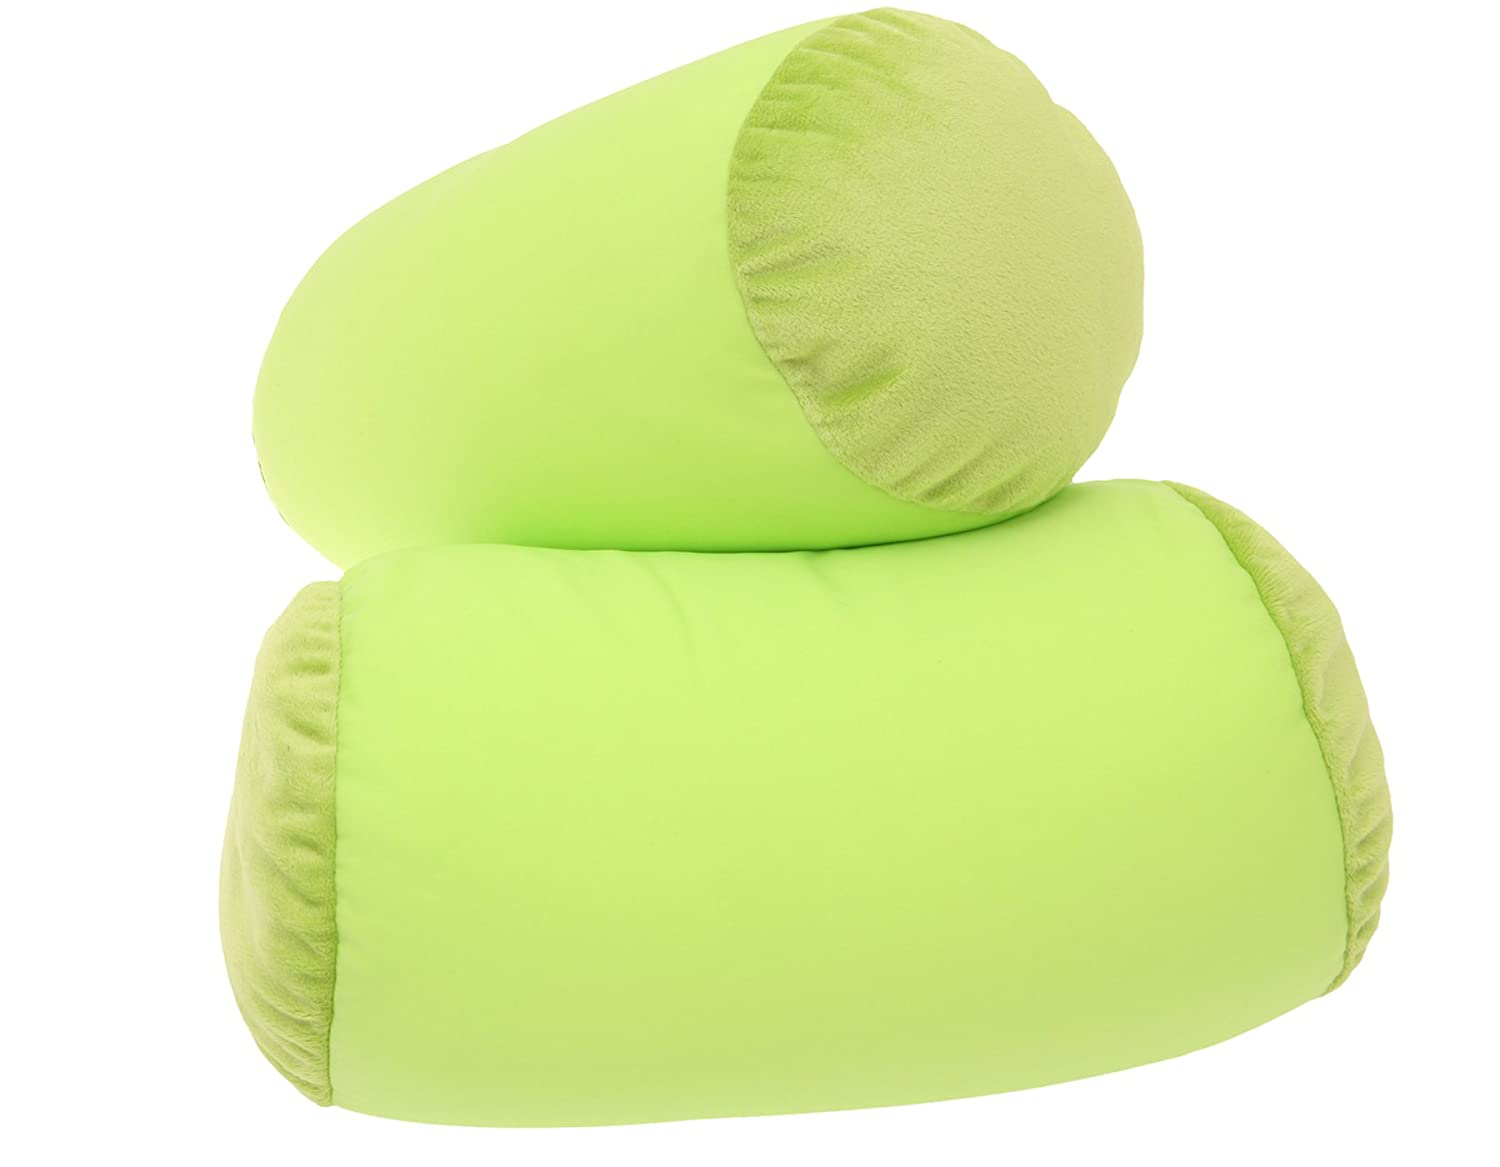 amazoncom microbead pillow neck roll bolster pillows  green  - amazoncom microbead pillow neck roll bolster pillows  green microbeadpillow  squishy micro bead pillow  squishy pillow  moshi pillow  beanpillow